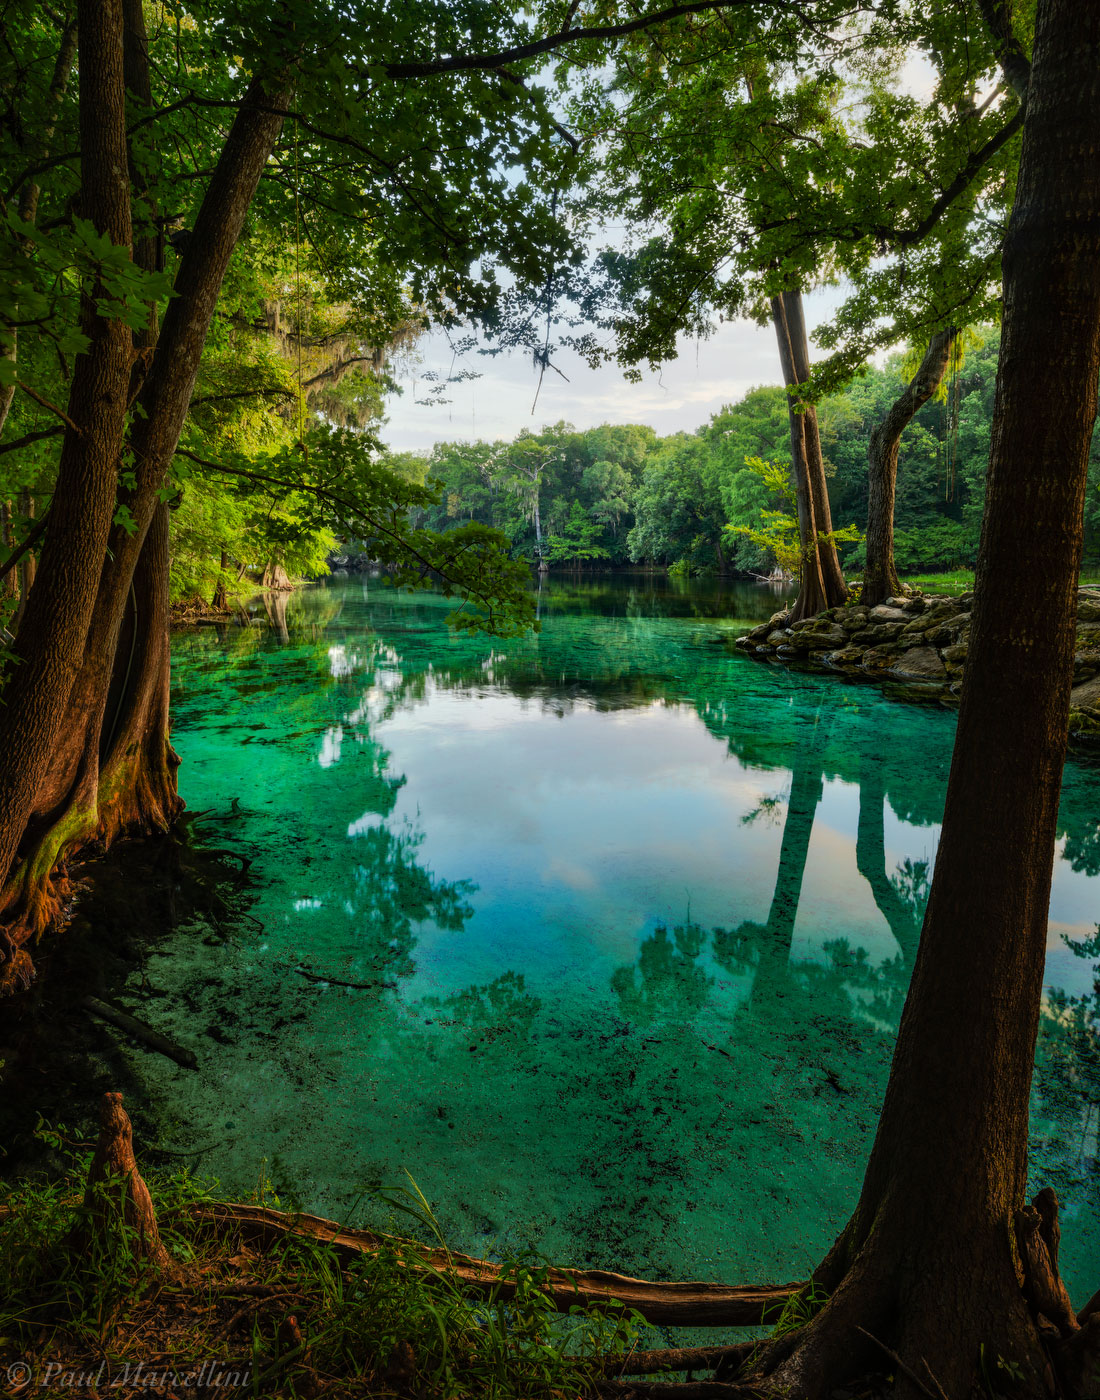 devil's eye spring, santa fe river, florida, spring, nature, photography, photo